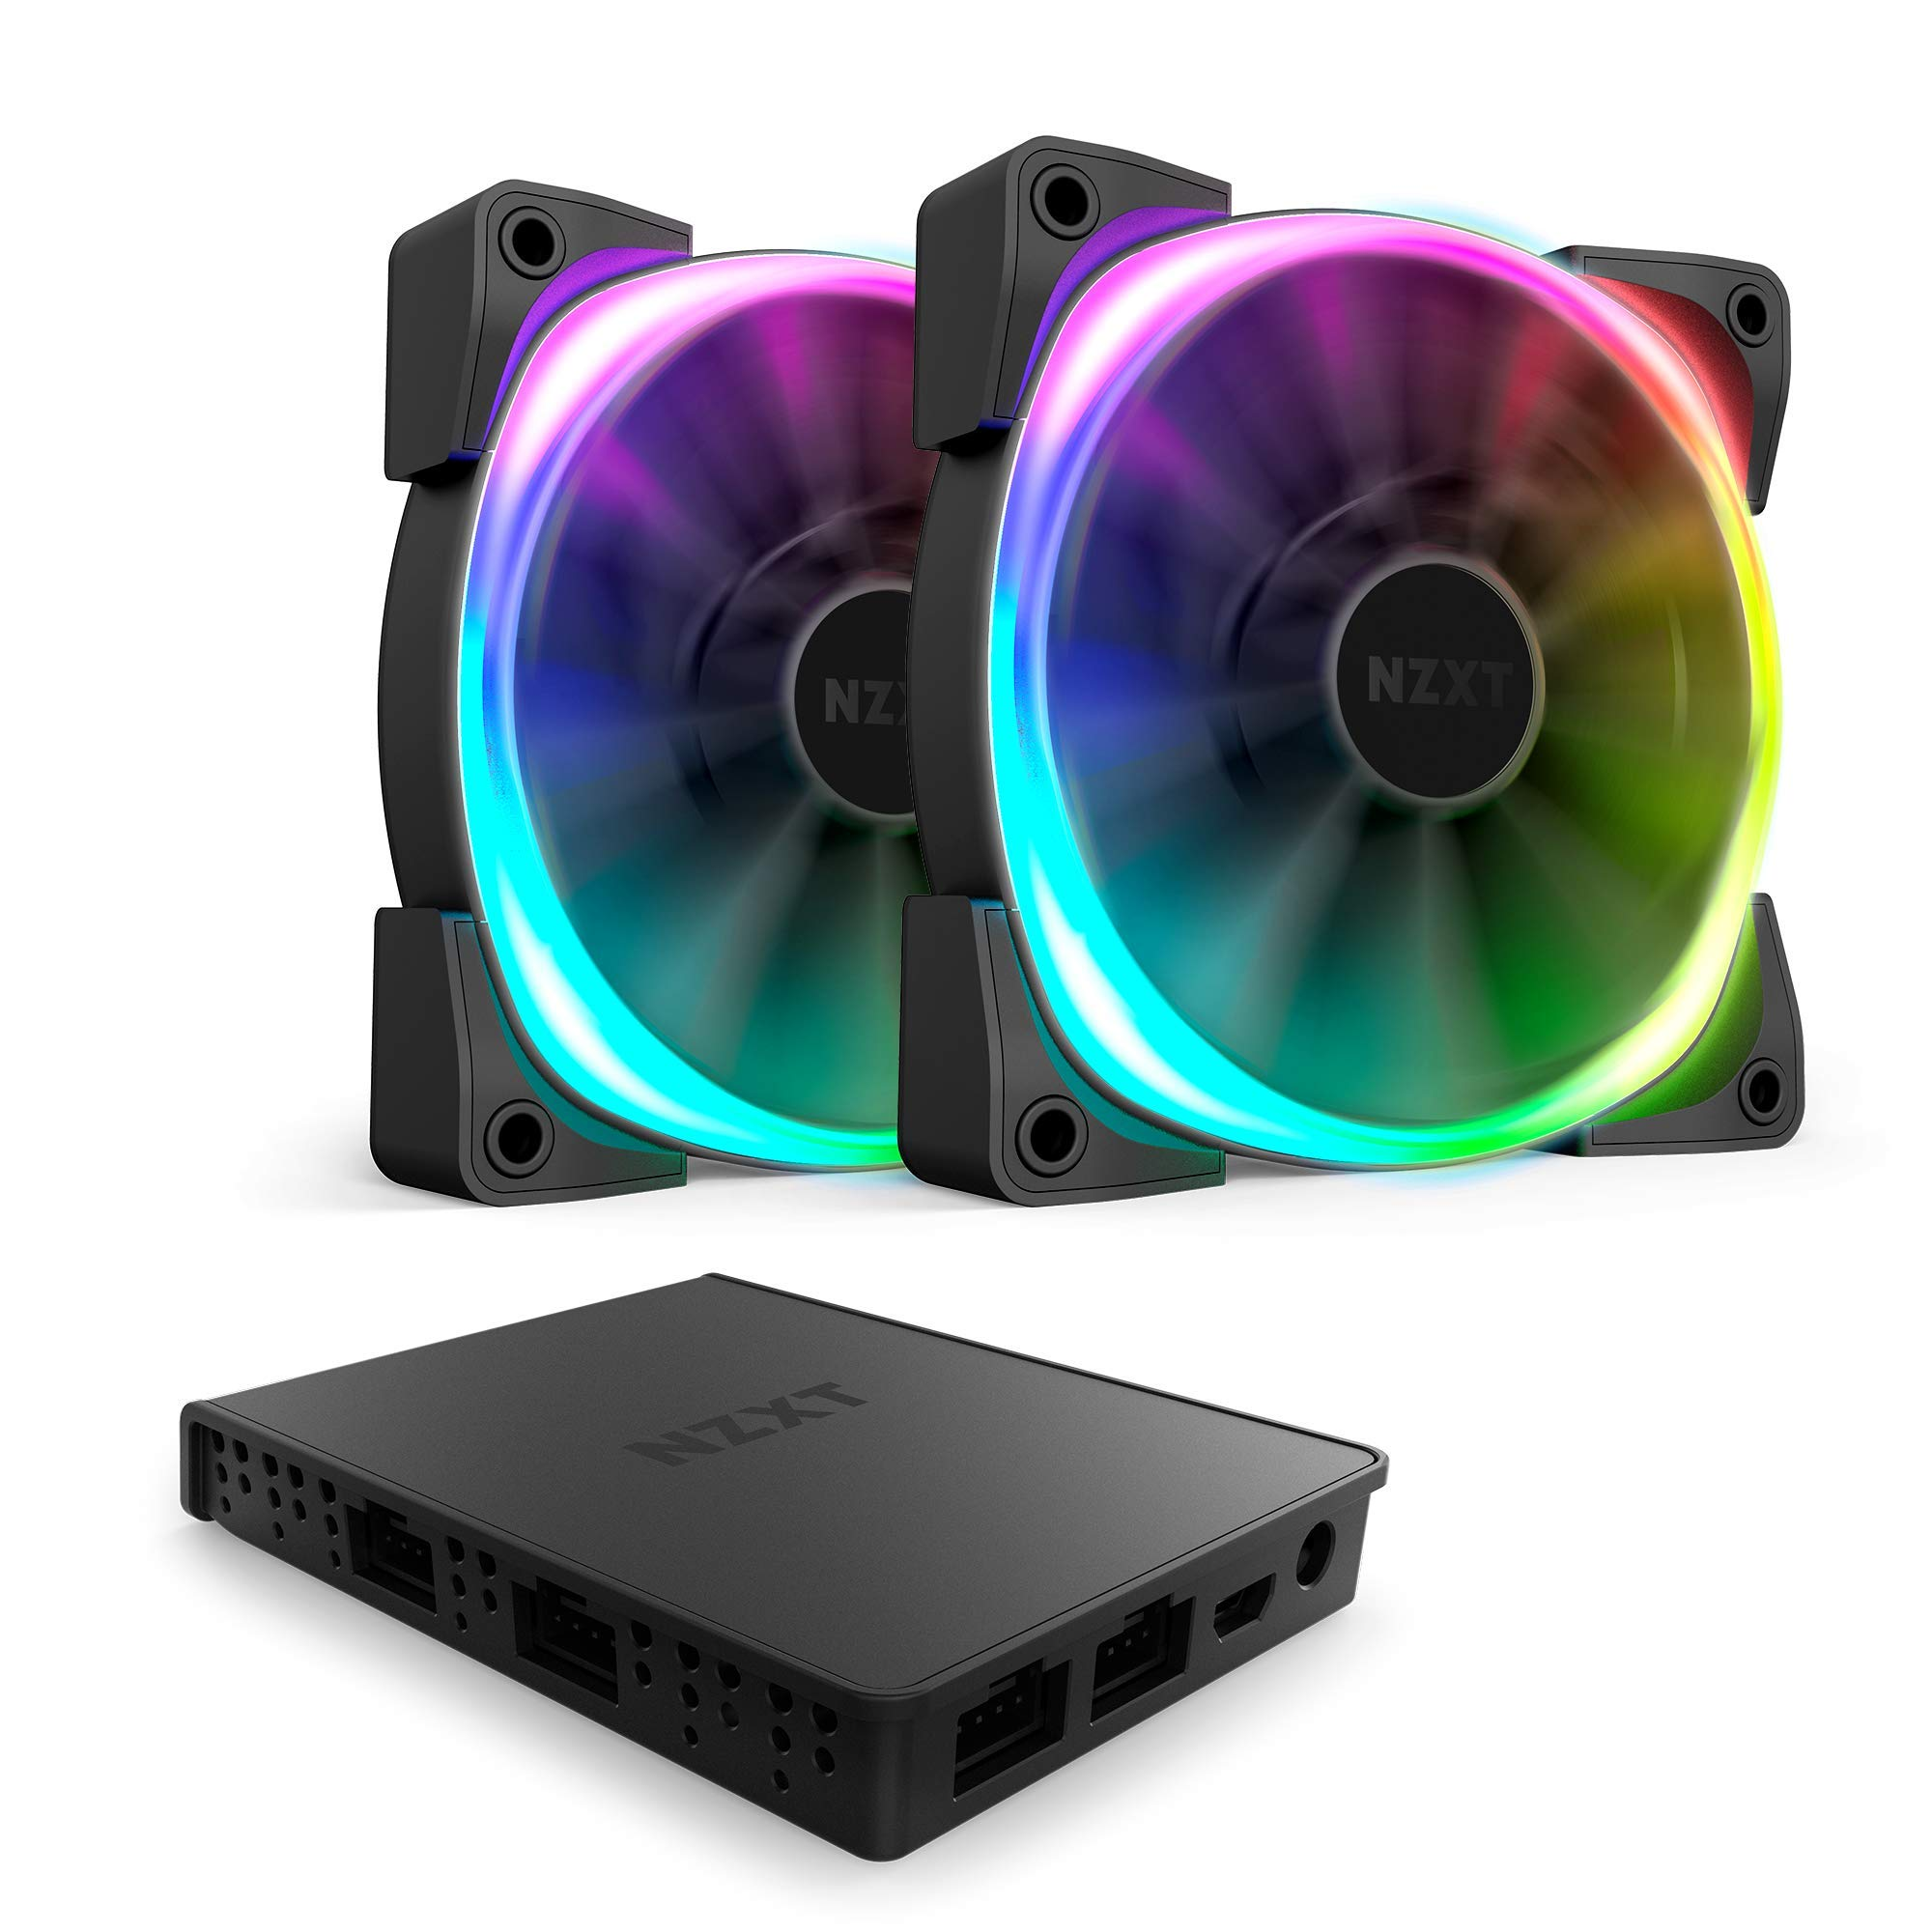 Nzxt AER RGB 2 - 2-Pack of 120mm RGB PWM Fans with HUE 2 Lighting Controller - Advanced Lighting Customization - LED RGB PWM Fans - Winglet Tips - Fluid Dynamic Bearing - PC Case Fan by NZXT